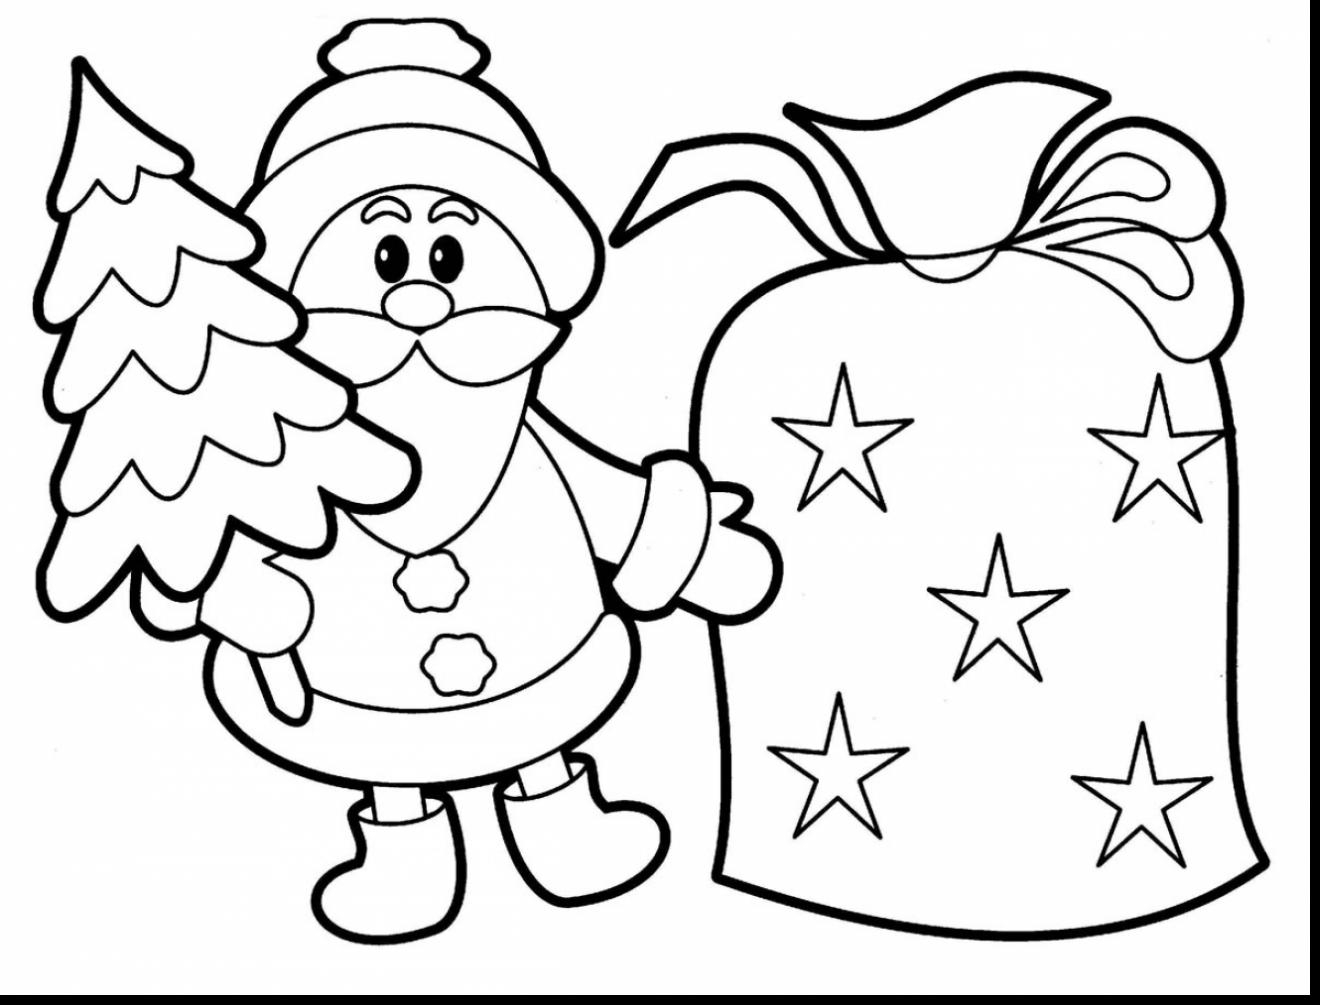 The Amazing World Of Gumball Coloring Pages To Print